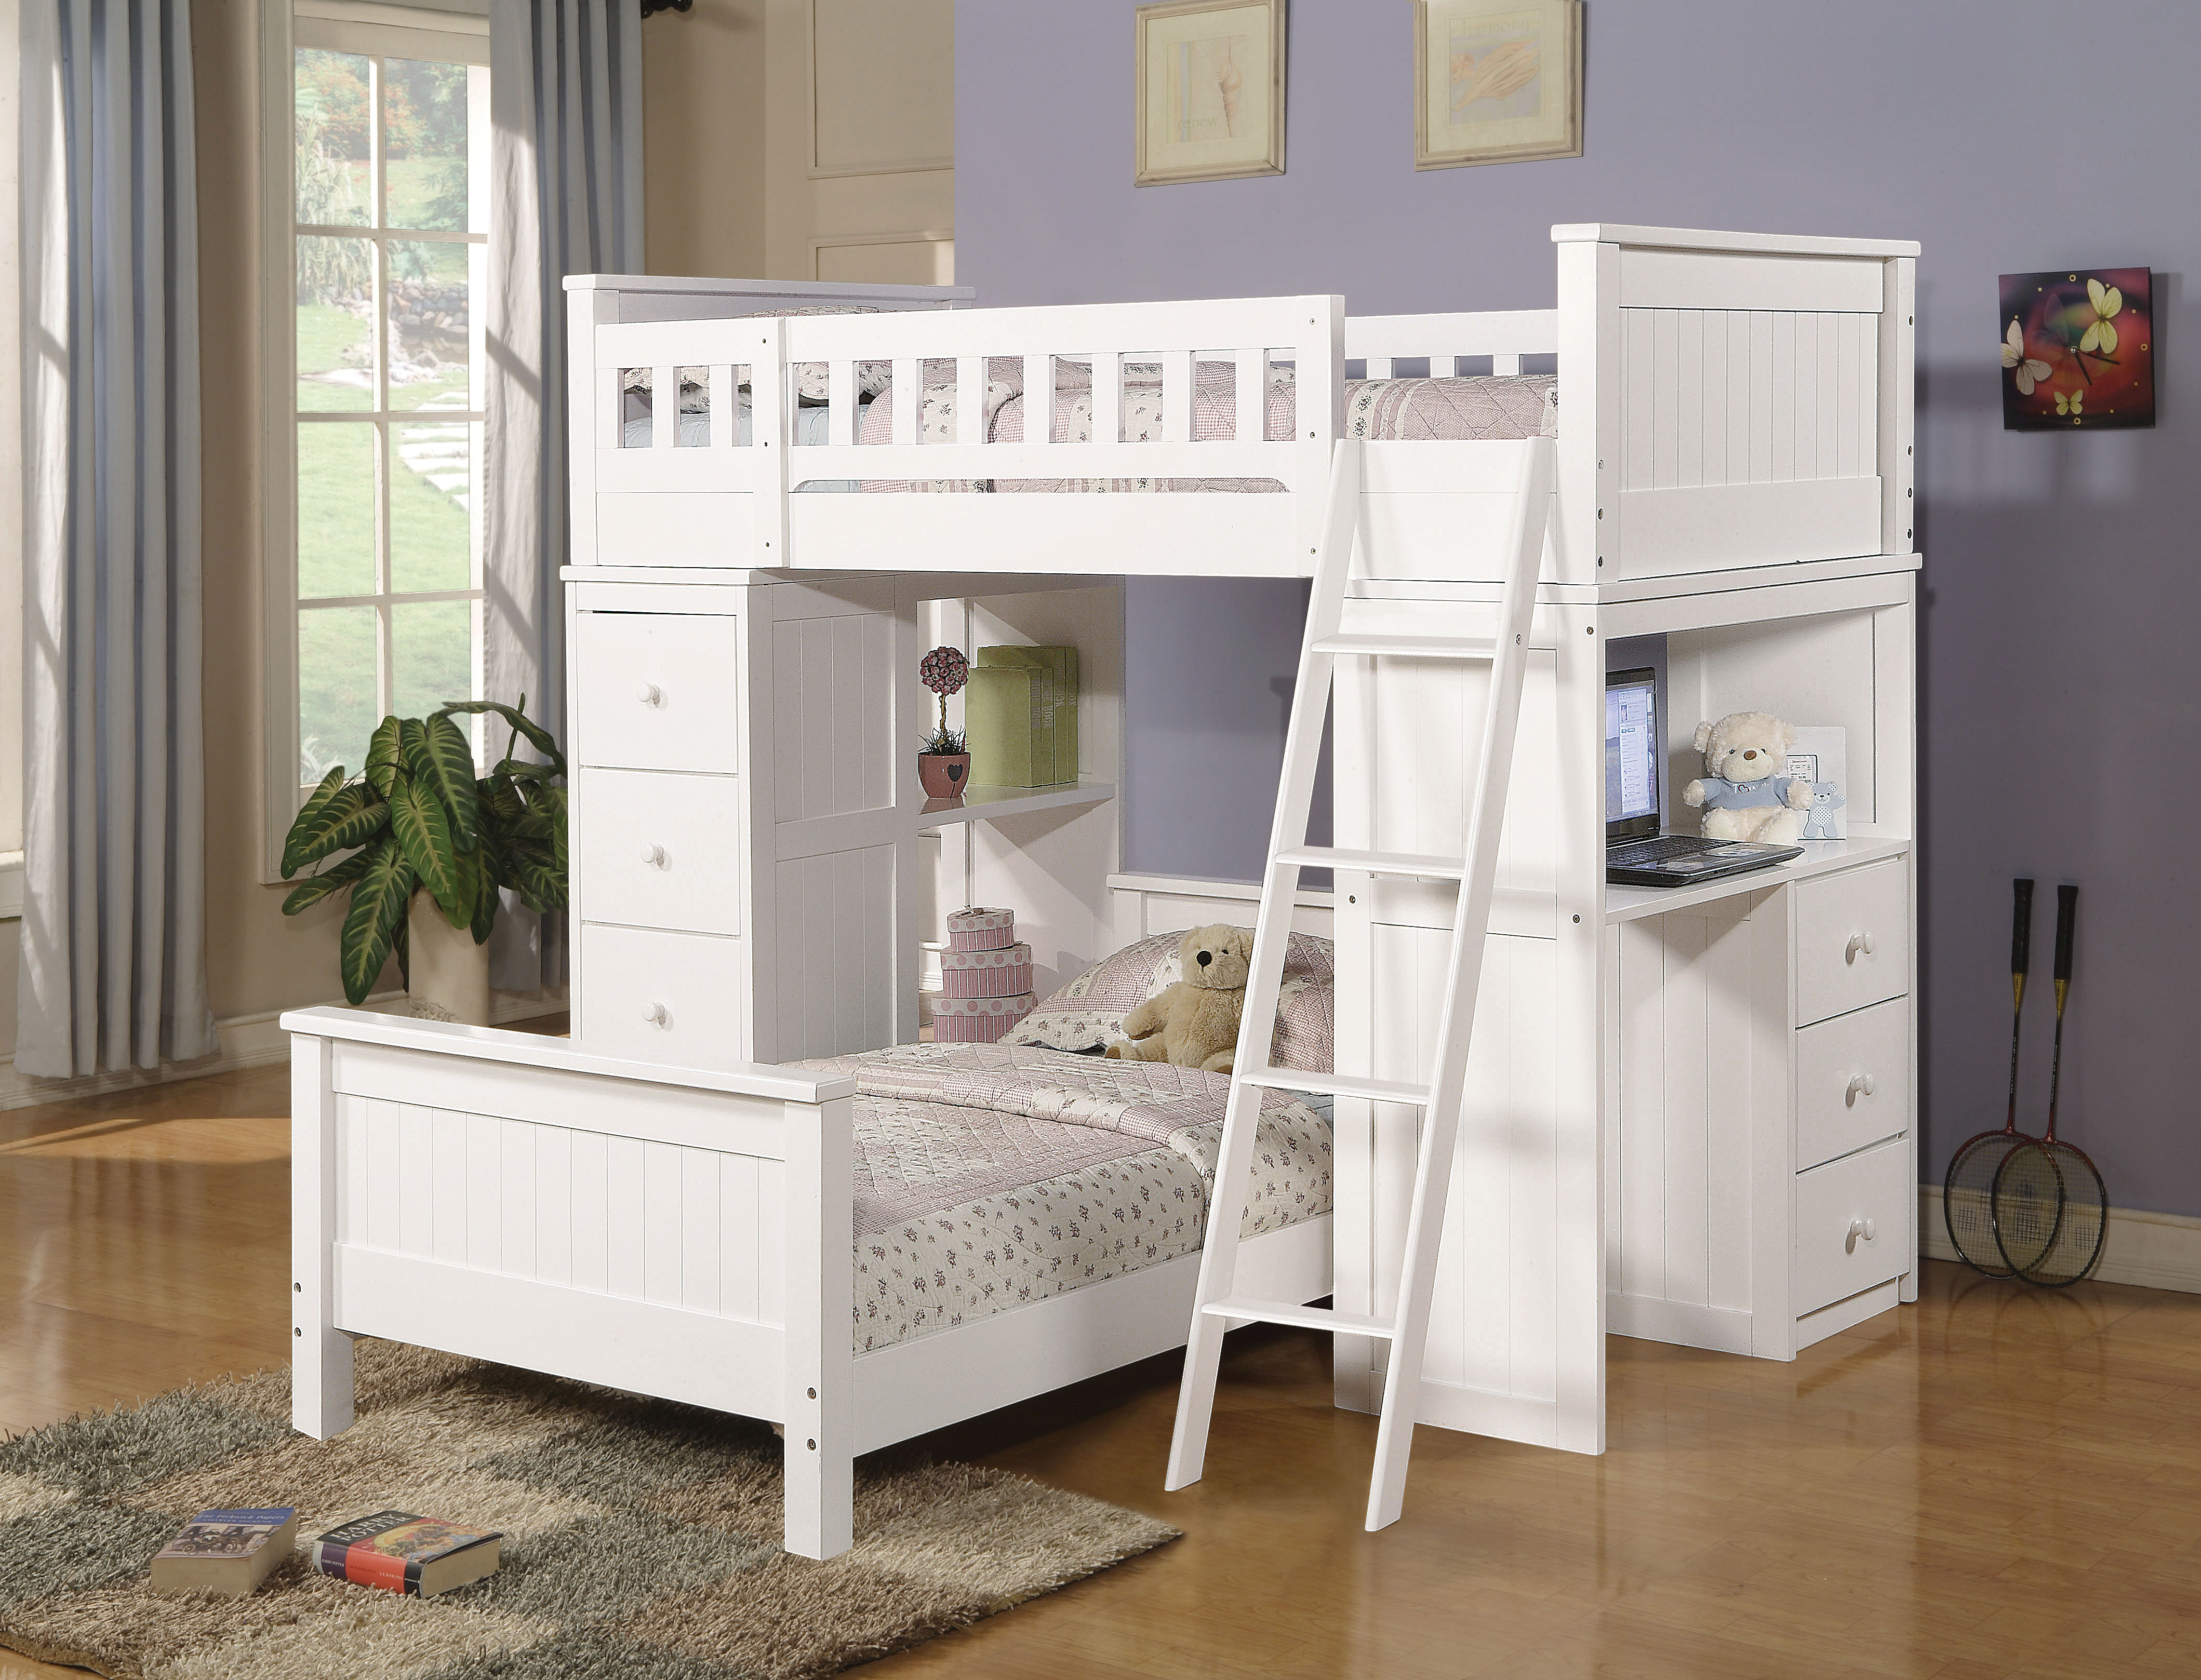 Acme Furniture Willoughby White Loft Bed To Enlarge